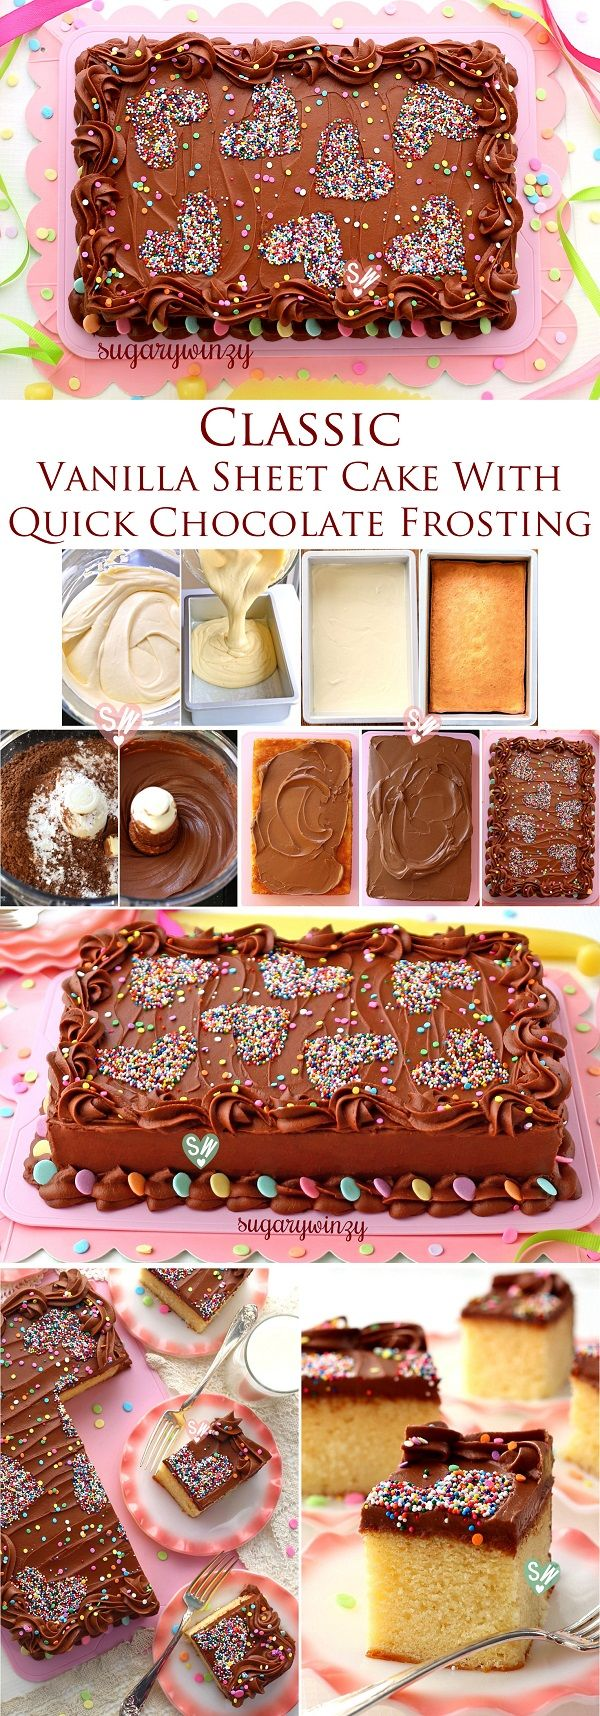 SugaryWinzy Classic Vanilla Sheet Cake with Quick Chocolate Frosting